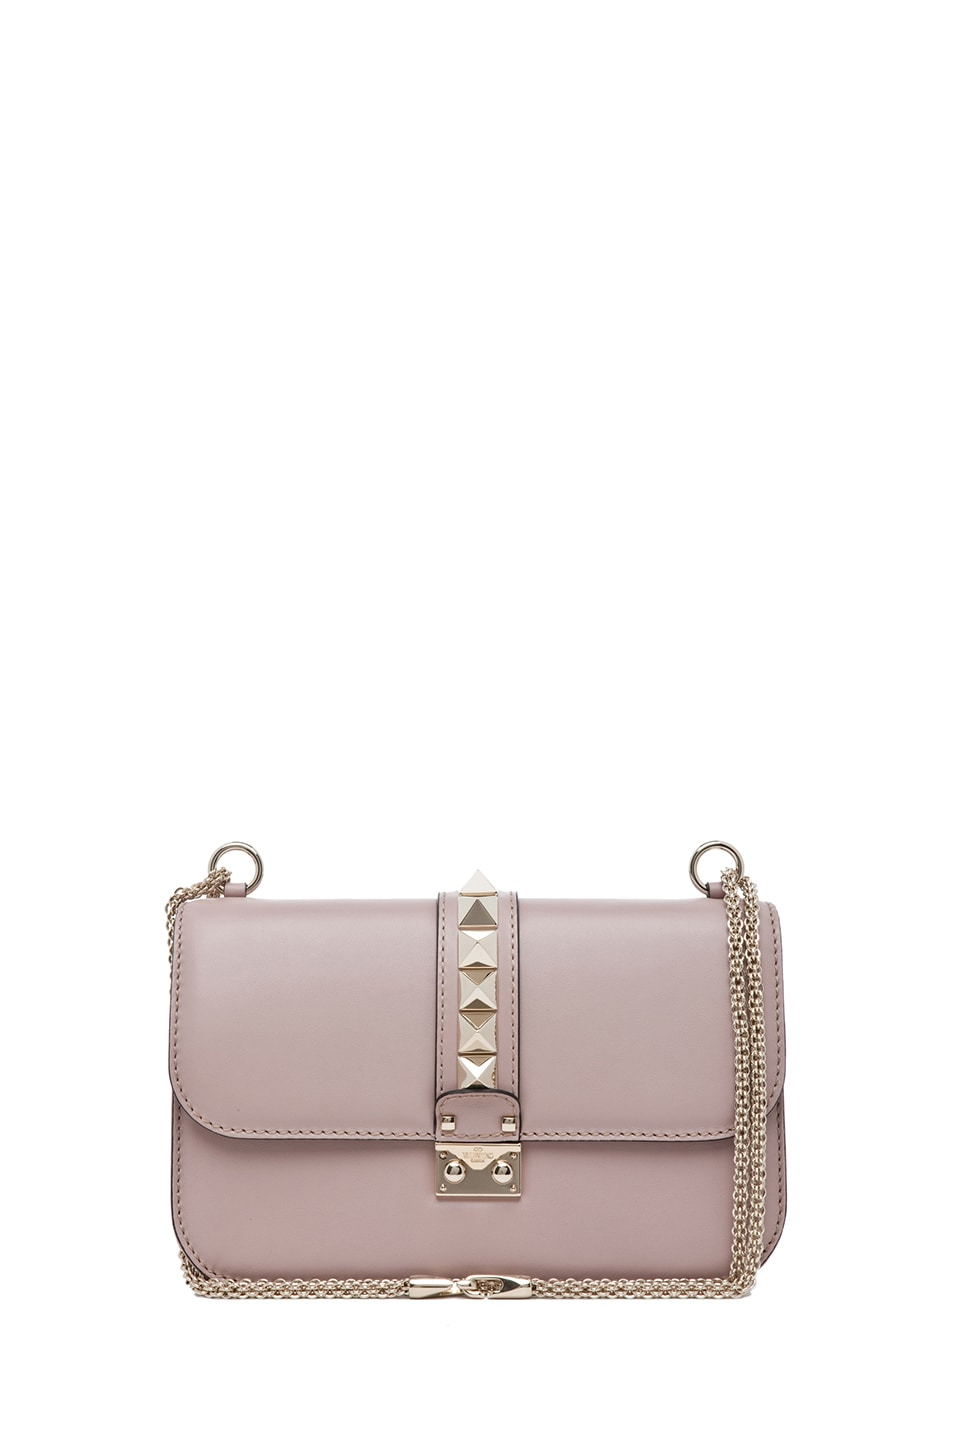 Image 1 of Valentino Medium Lock Flap Bag in Poudre